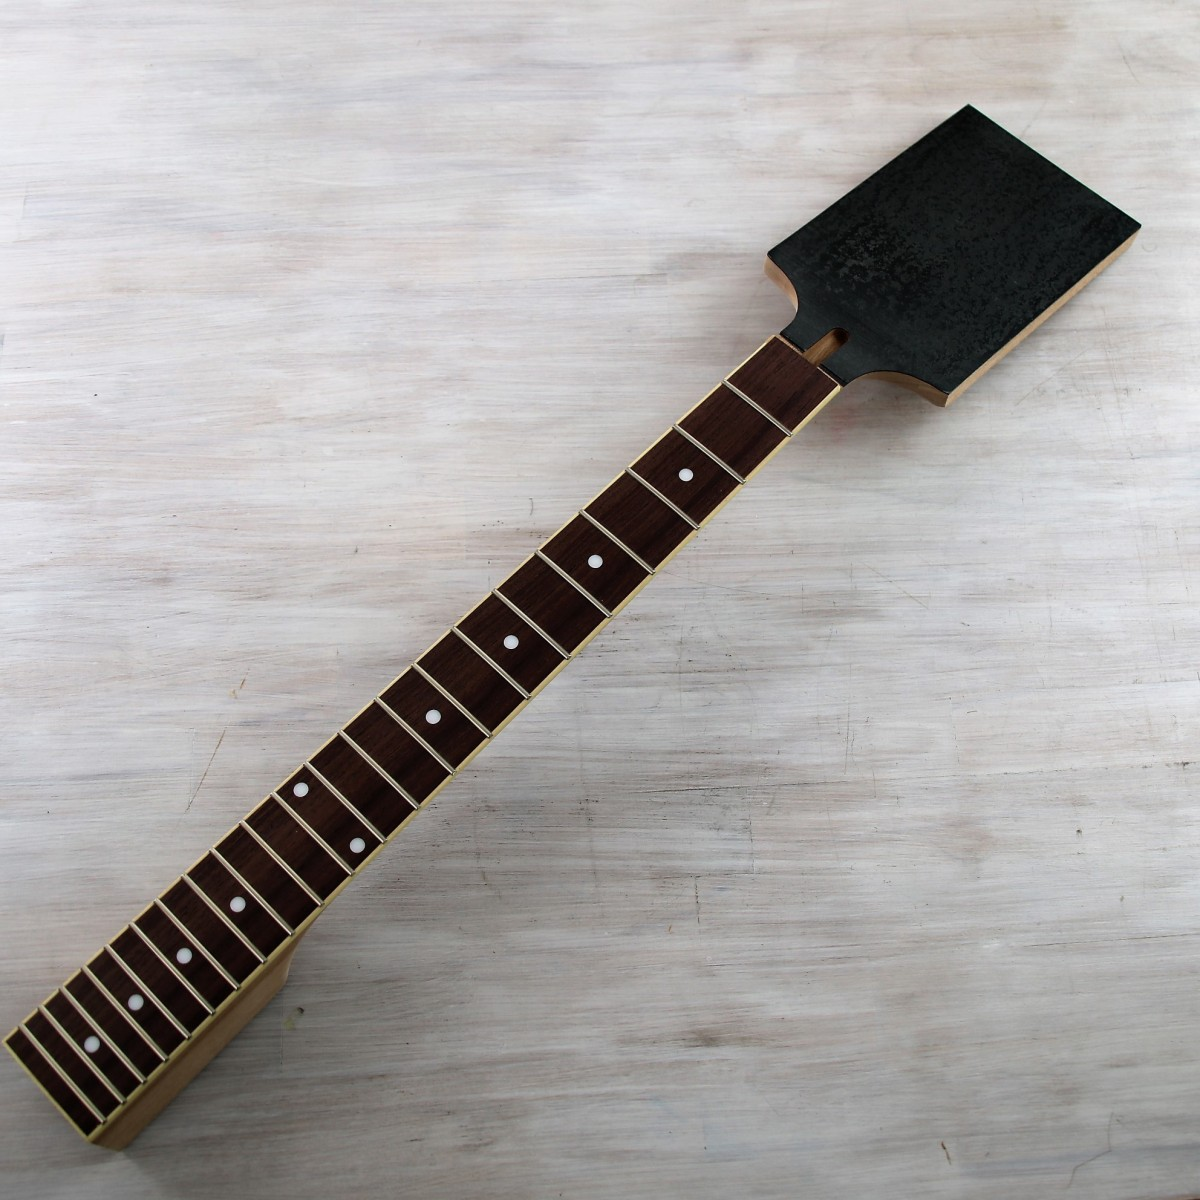 MERIS ENZO Multi-Voice Synthesizer